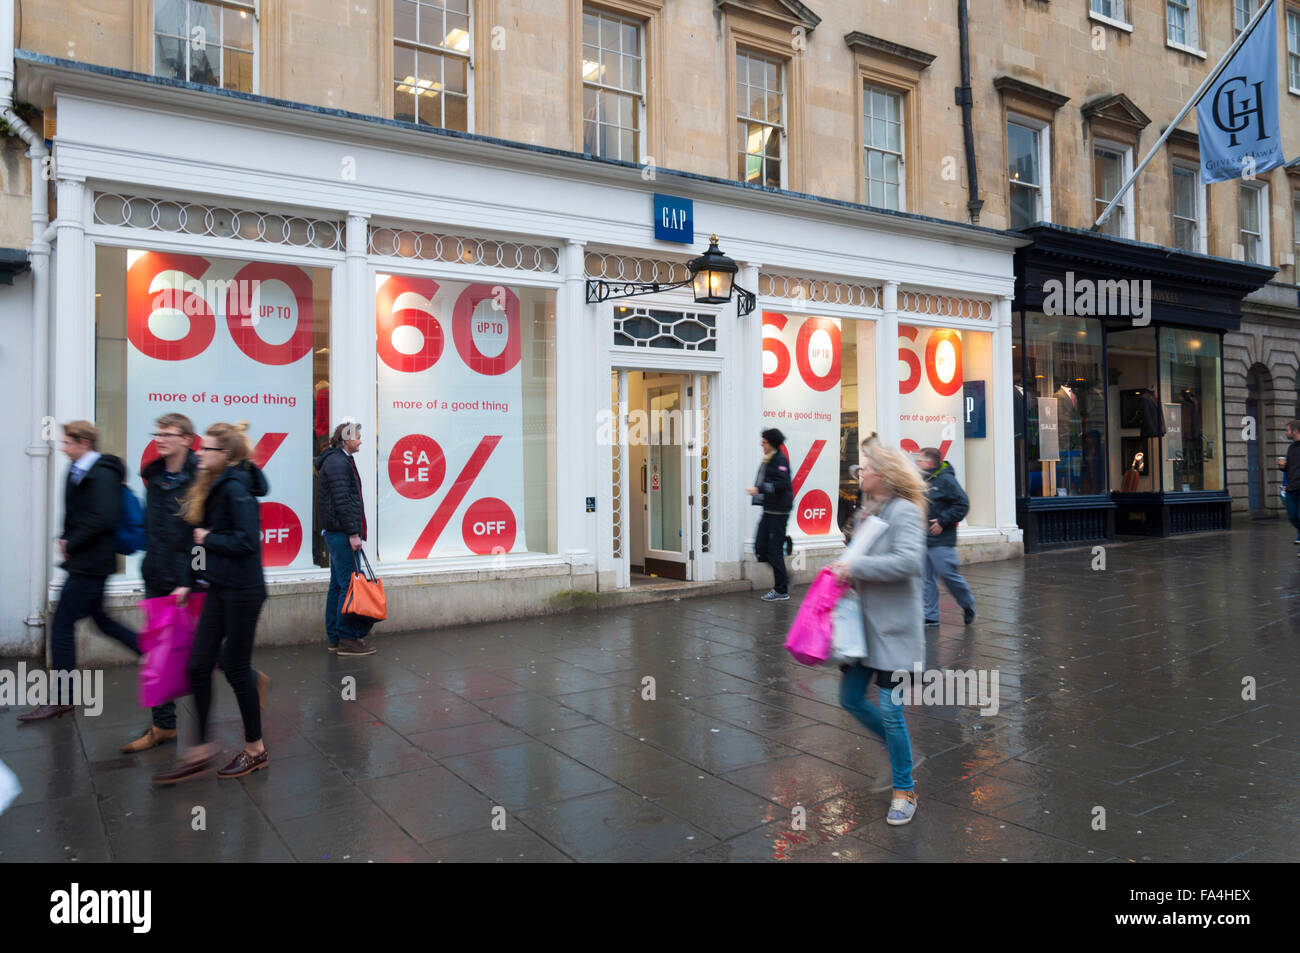 Bath, Somerset, UK. 21st December 2015. Several retail outlets such as GAP have sales on as shoppers finish their - Stock Image